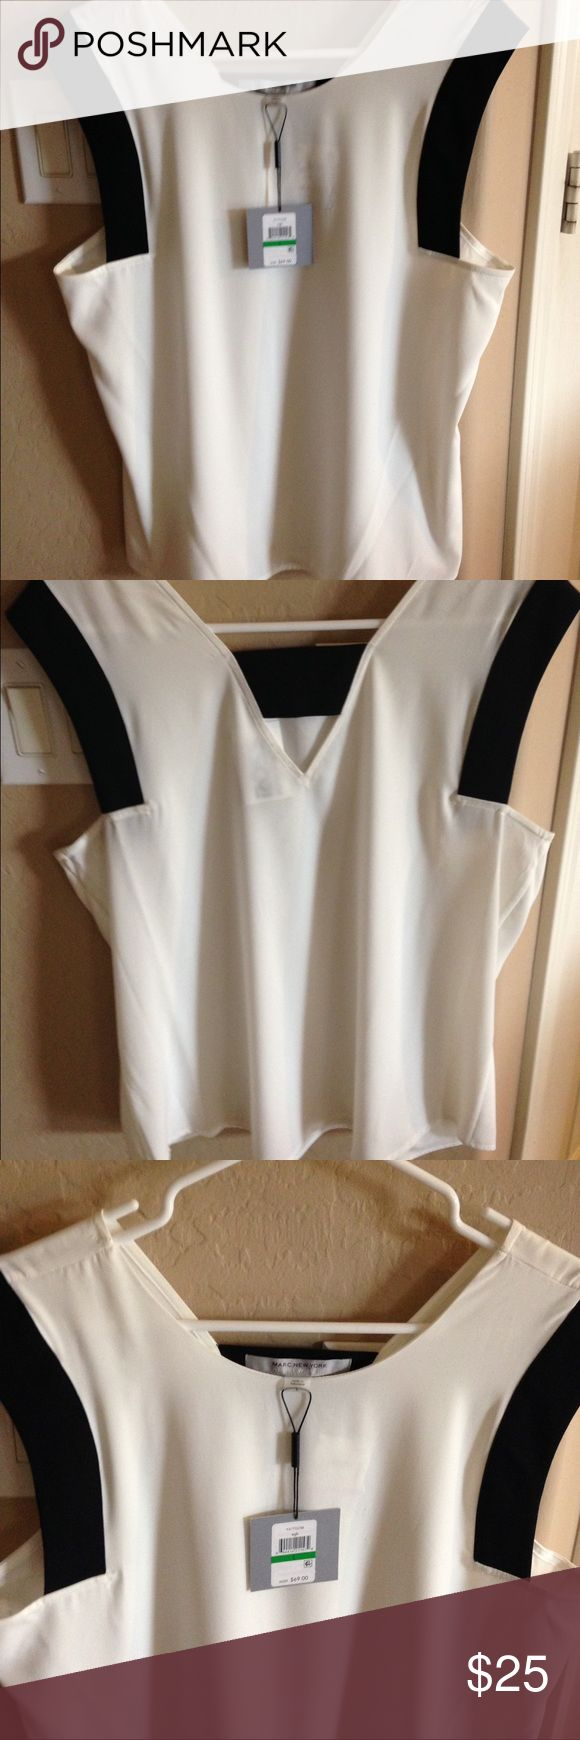 Marc New York Andrew Marc eggshell/black top-Large Marc New York Andrew Marc eggshell/black top - Size Large. This top has a great cut to it. It is 97% polyester and 2% spandex. Sure to accent any outfit. Mark New York Andrew marc Tops Blouses